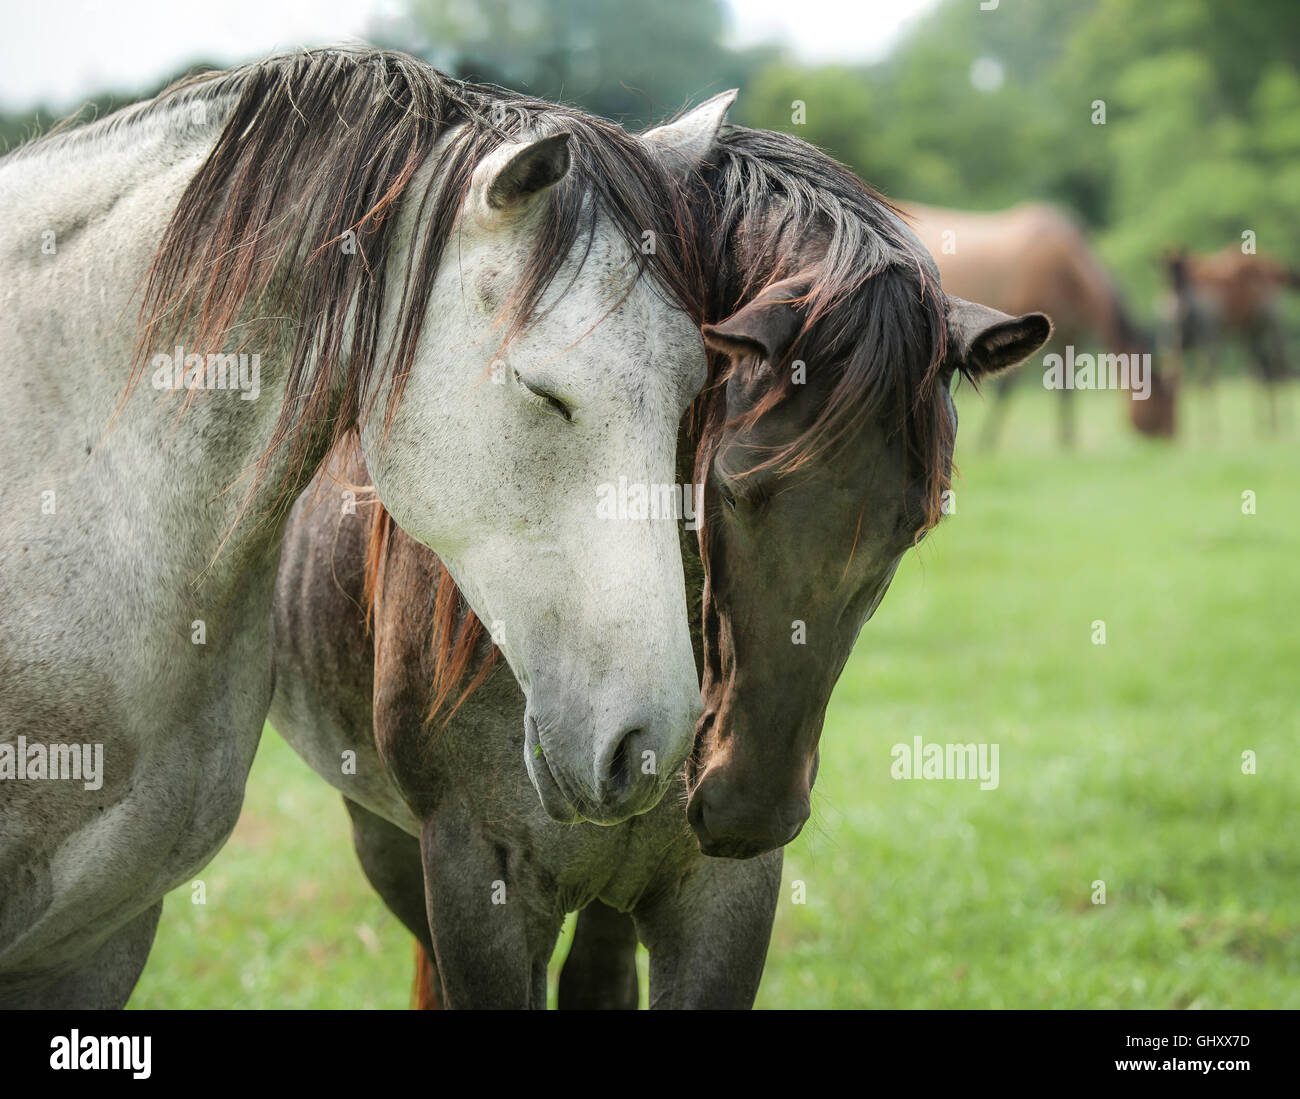 Juments Quarter Horse salue avec affection Photo Stock